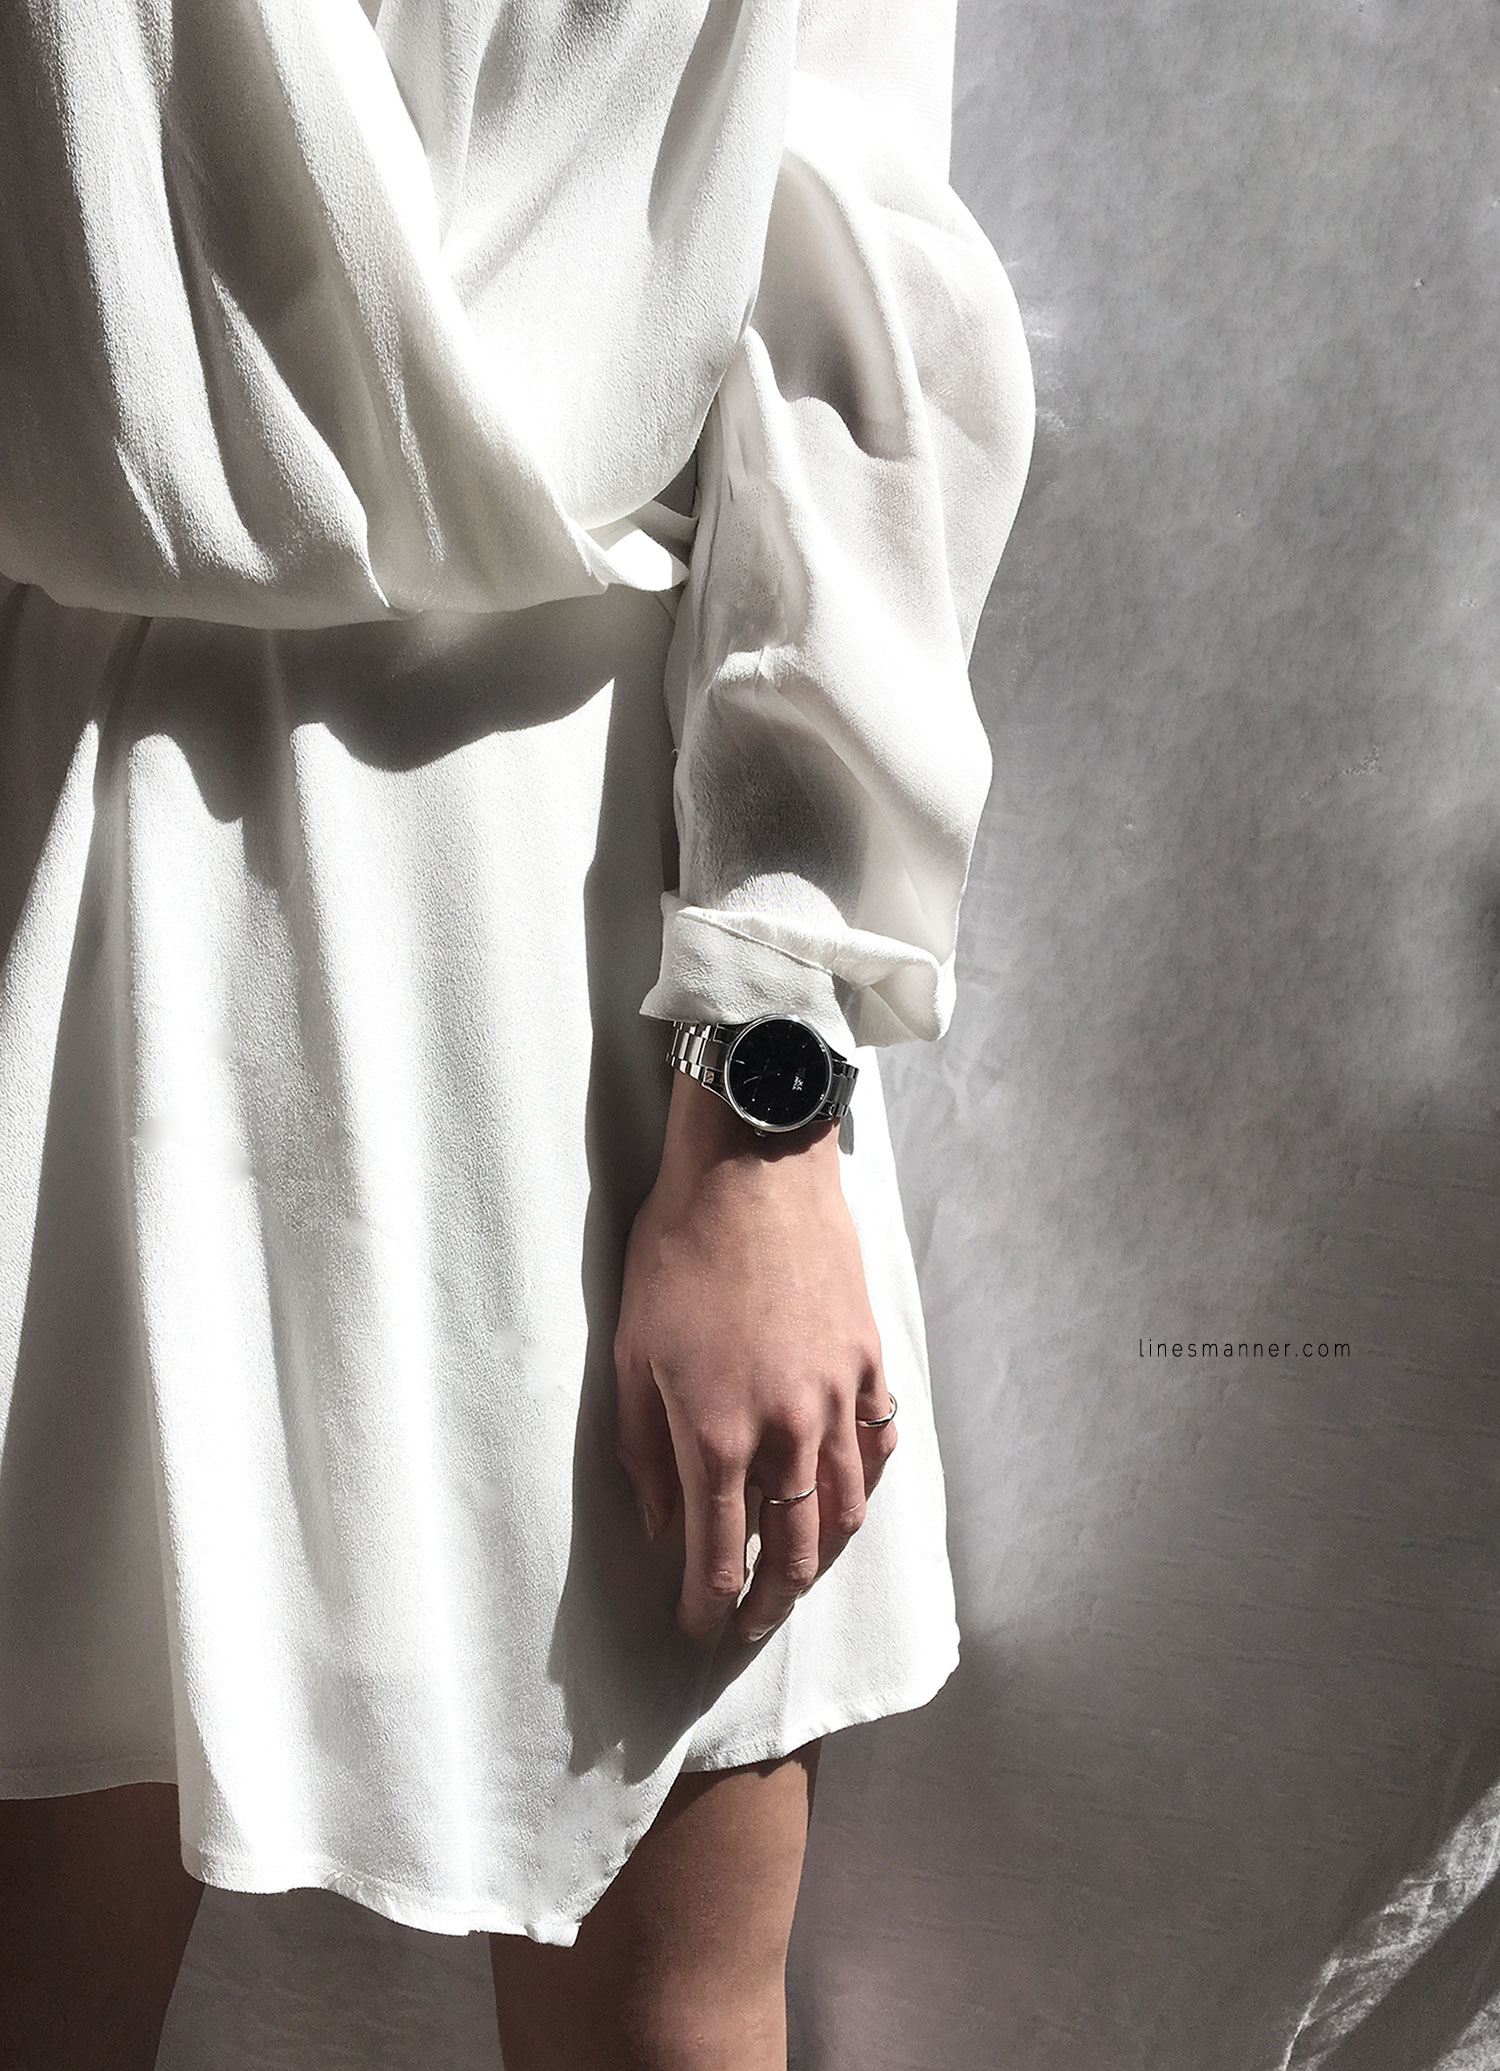 Lines-Manner-Bright-Whiteout-Essentials-Slouchy-Fresh-Clean-All_White-Details-Minimal-Outfit-Dress-Thridorm-A_Weathered_Penny_Nicole_Vienna-Simplicity-2